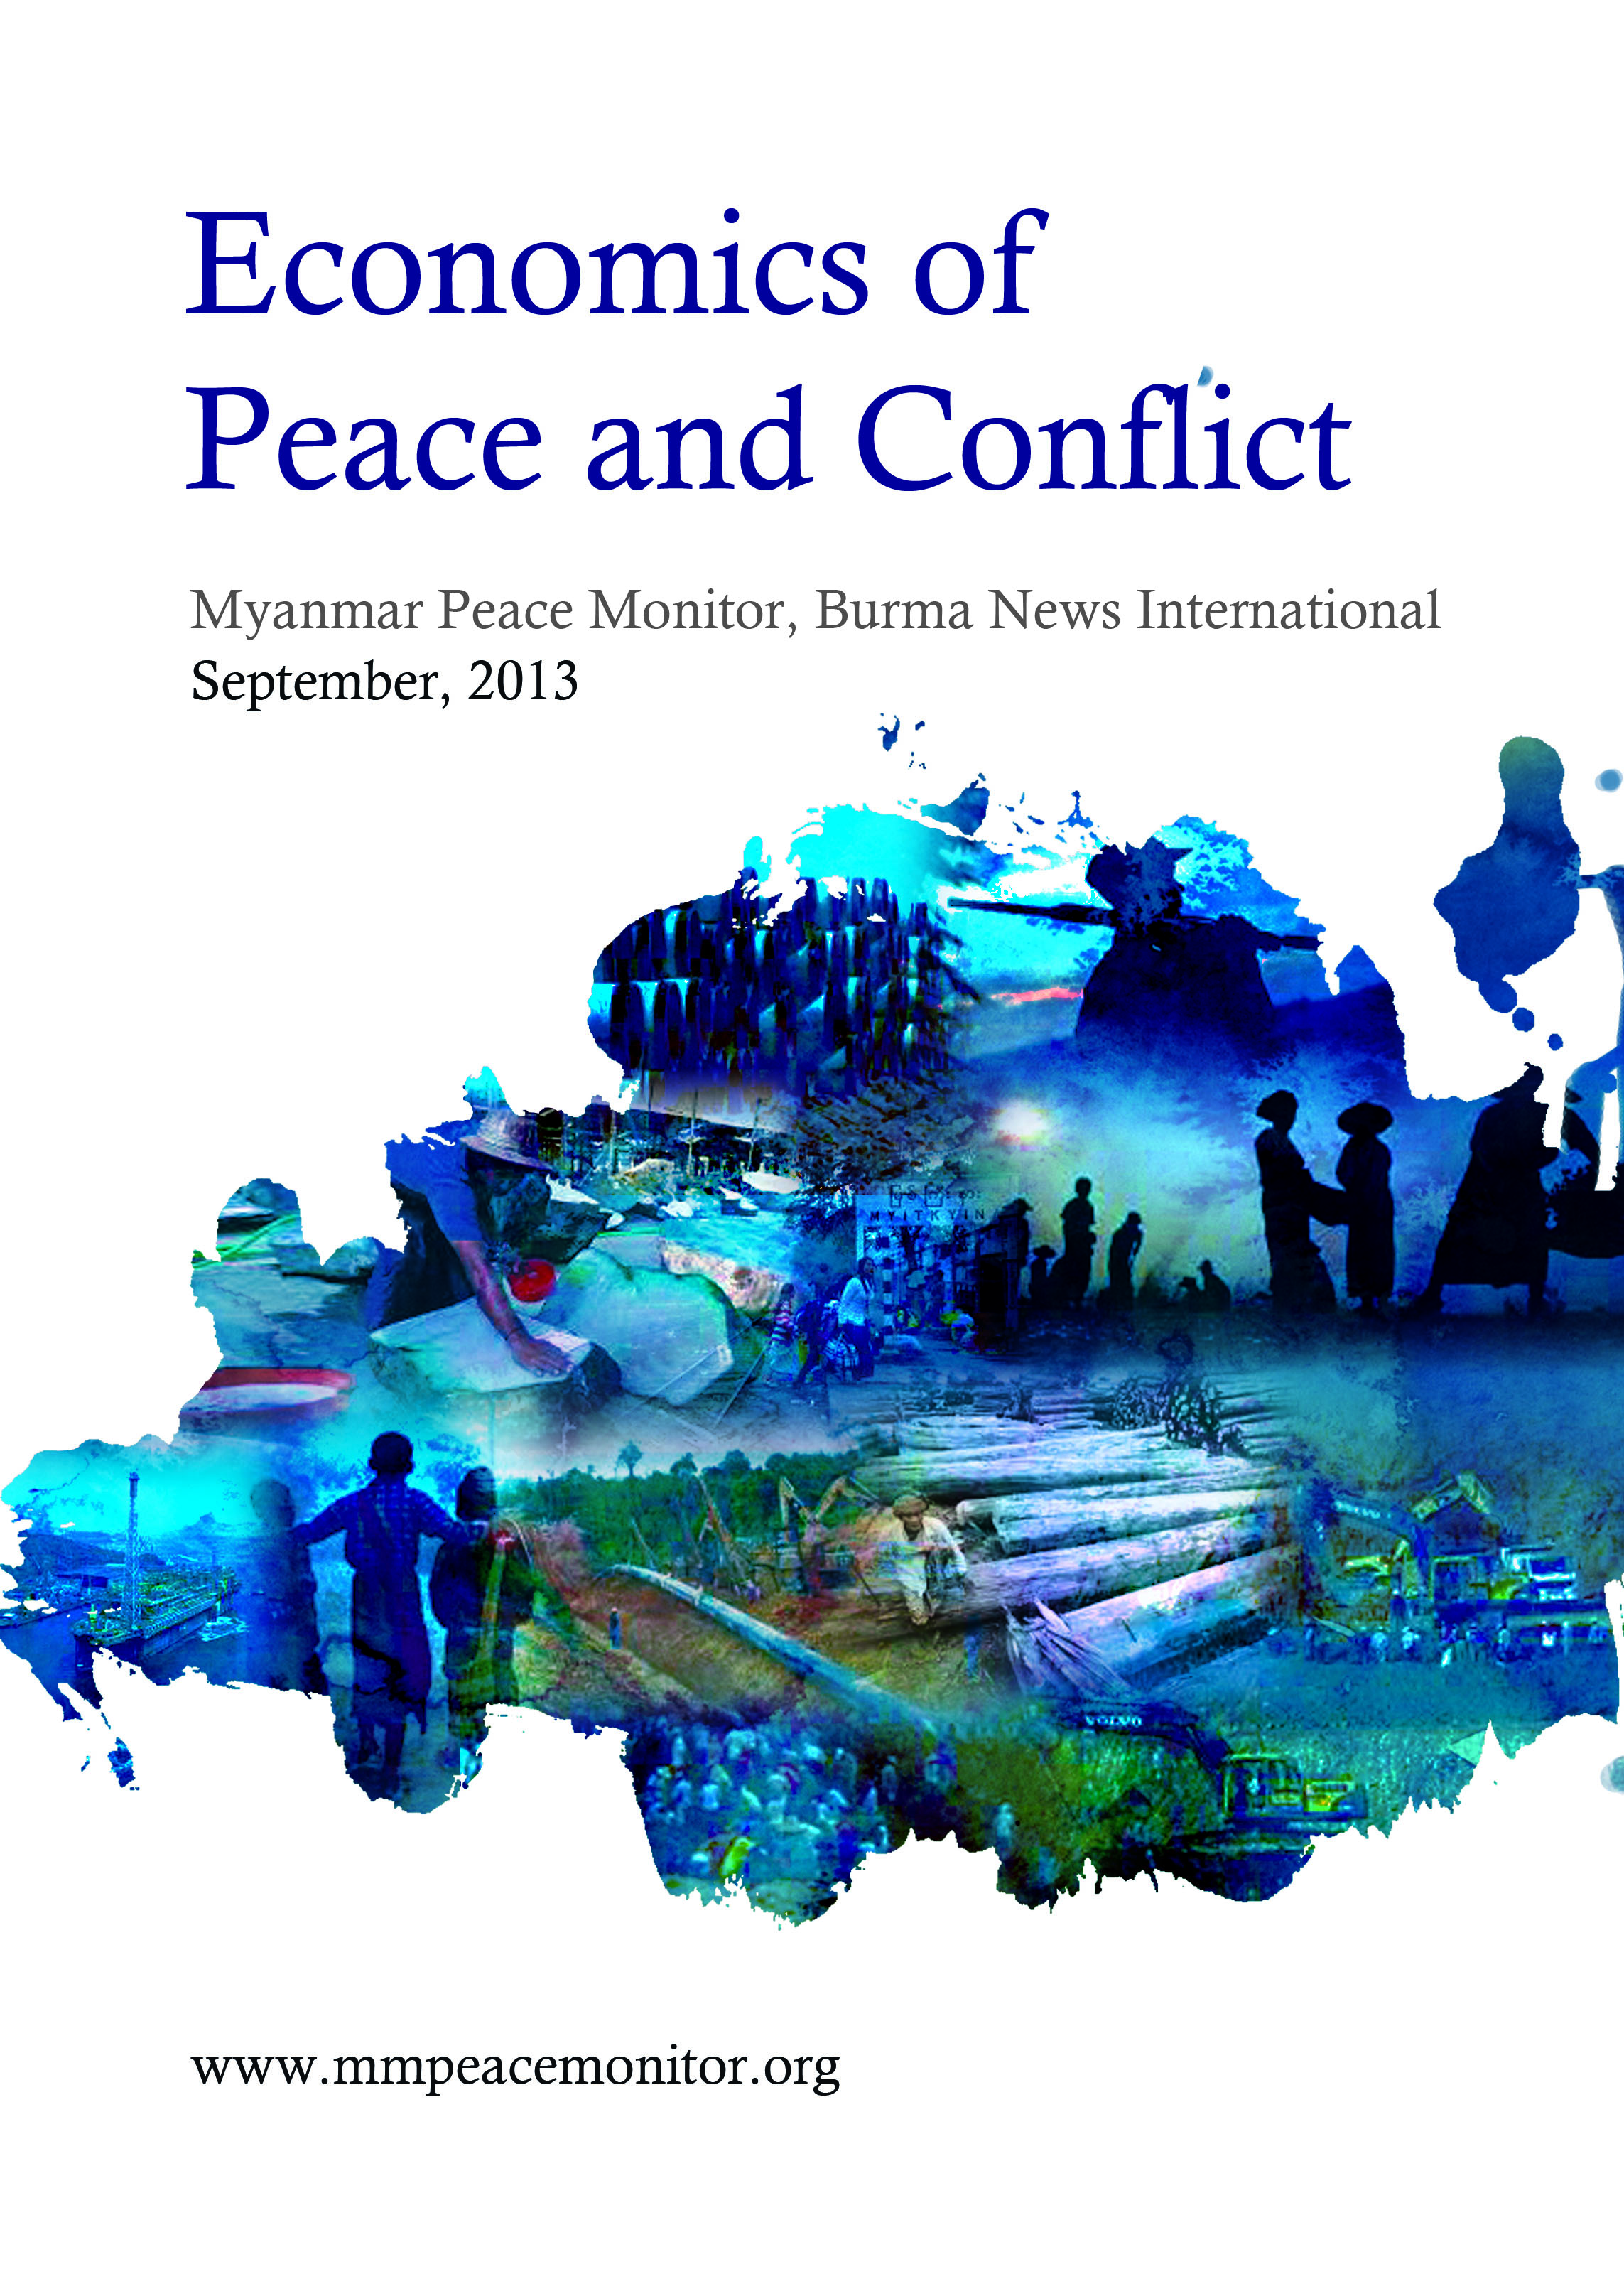 conflict and peace International idea has identified political participation and representation as one of its four key impact areas, and the strengthening of democratic governance structures to manage and accommodate.